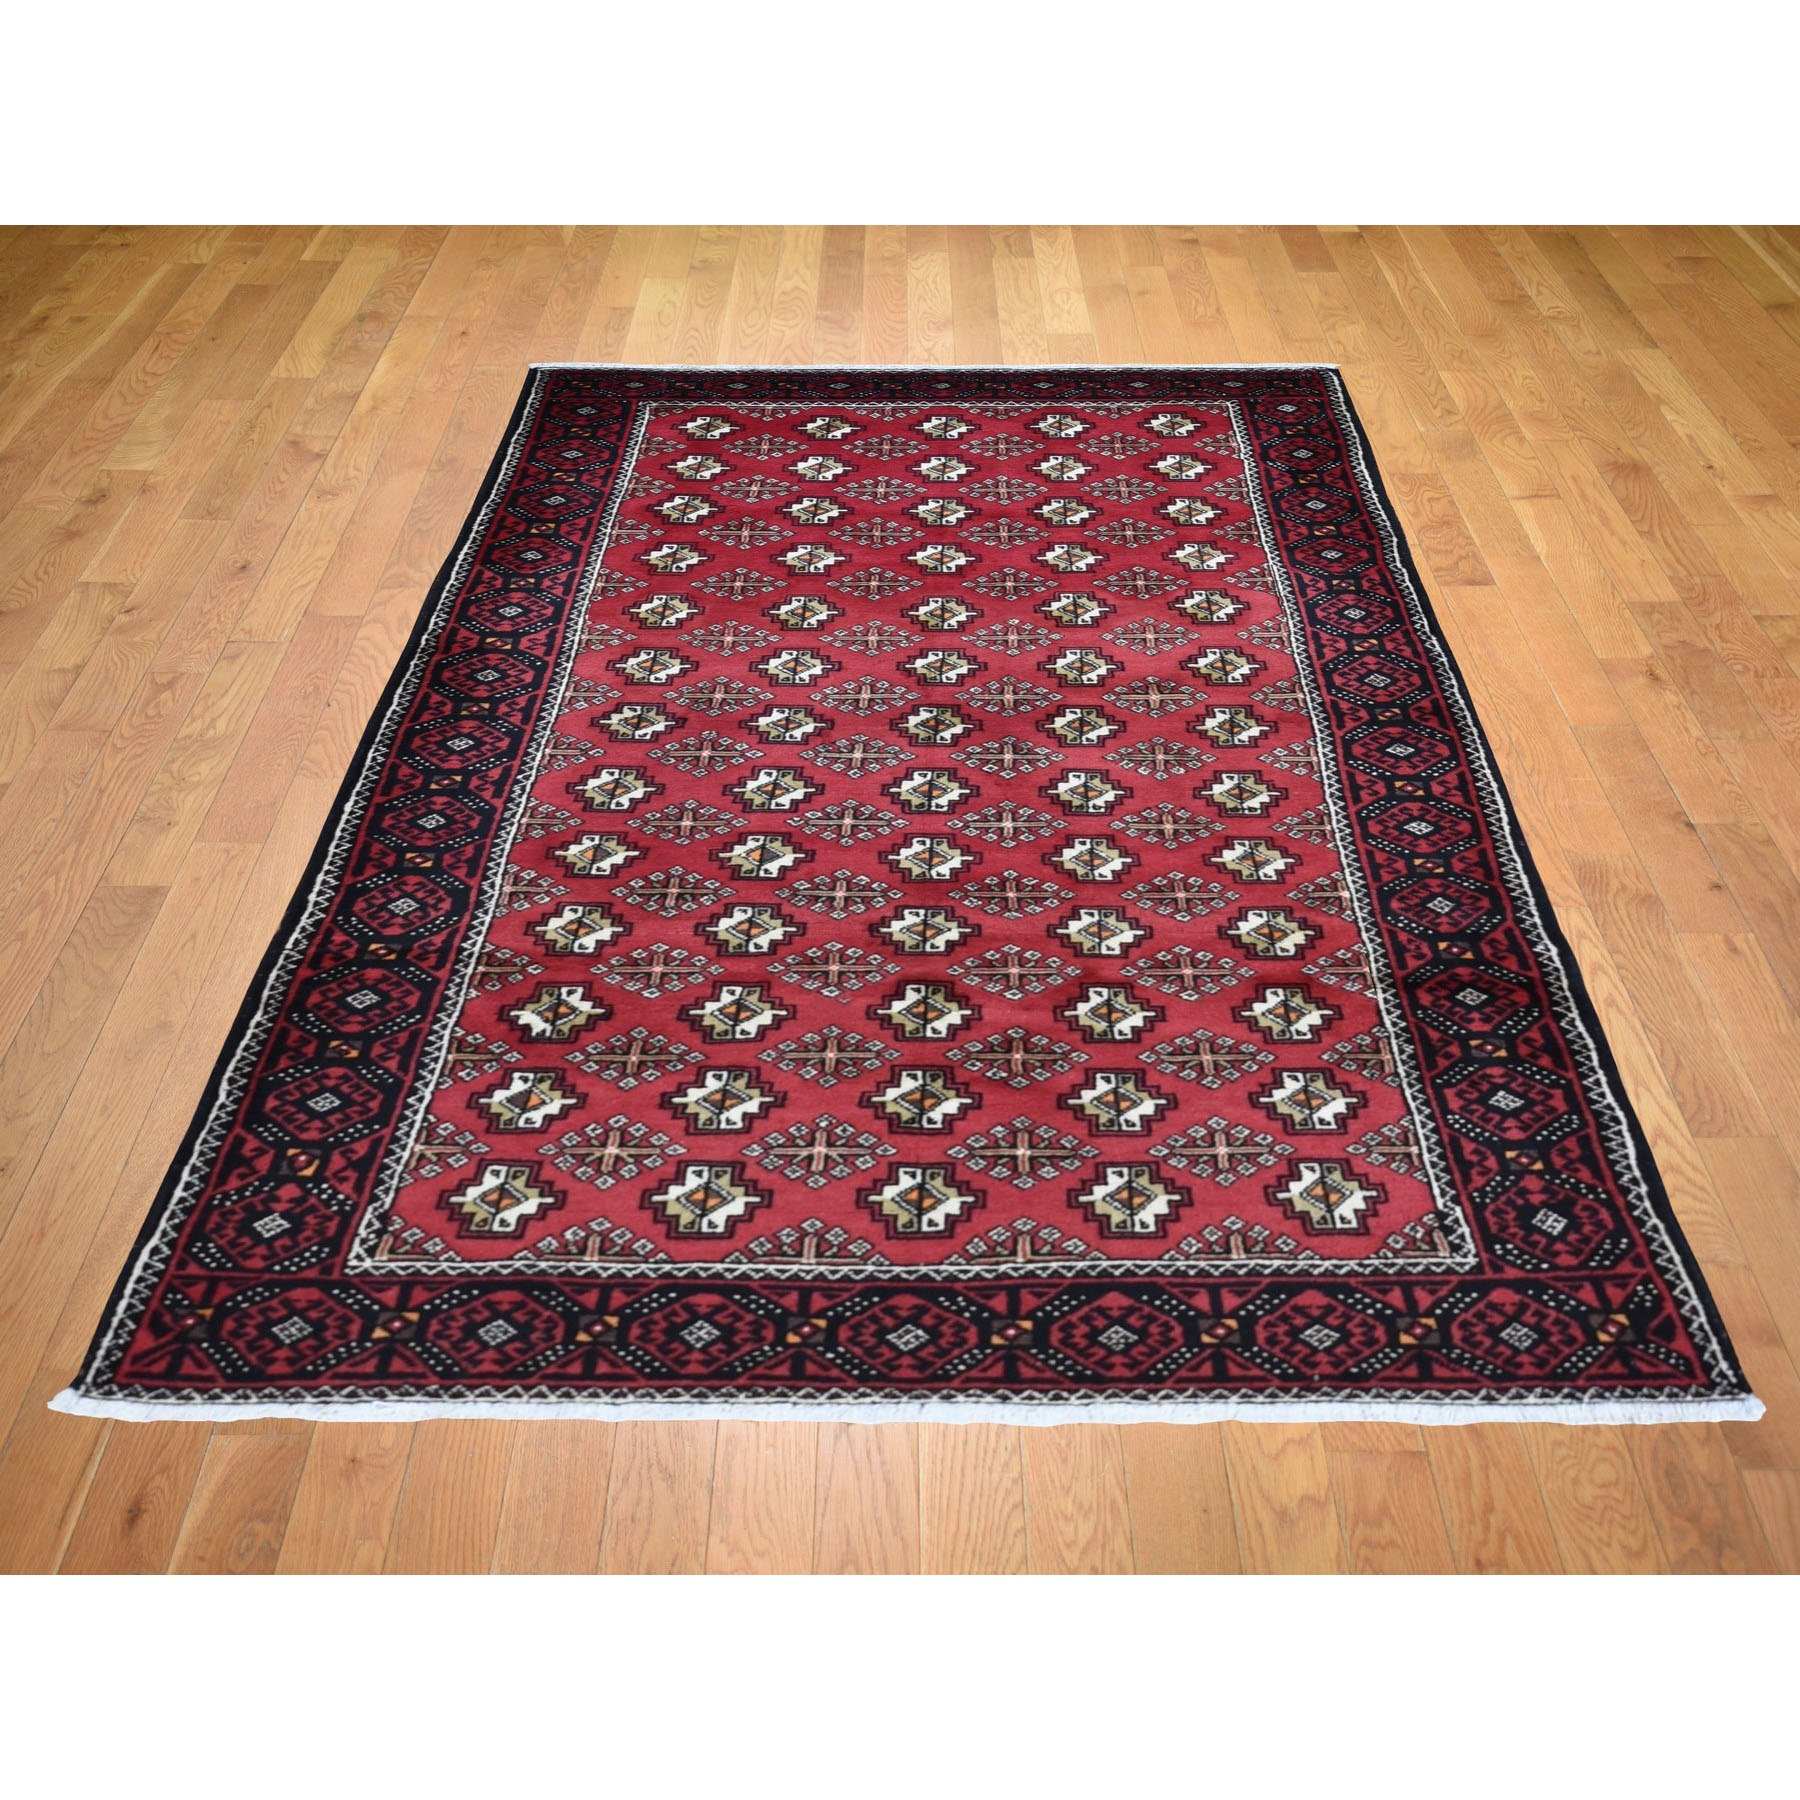 4-4 x8-3  Red Vintage Persian Baluch Geometric Design Exc Cond Pure Wool Hand Knotted Oriental Rug